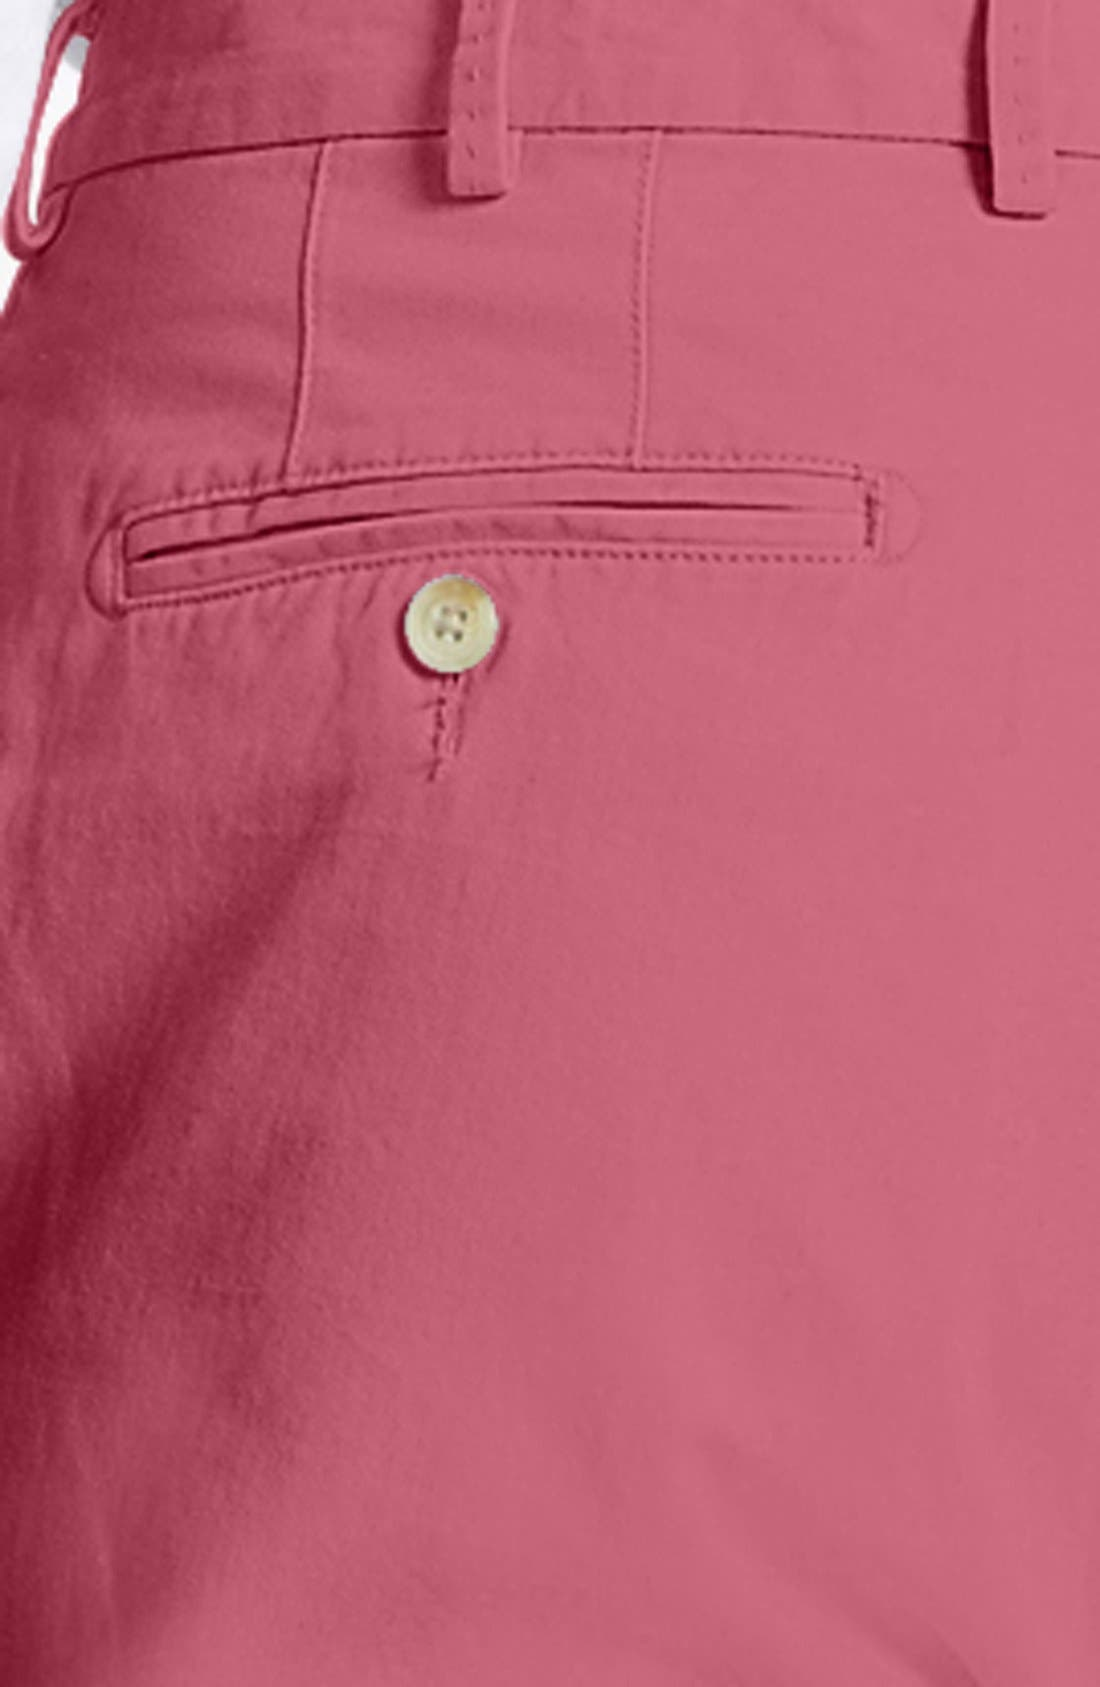 Garment Washed Twill Pants,                             Alternate thumbnail 35, color,